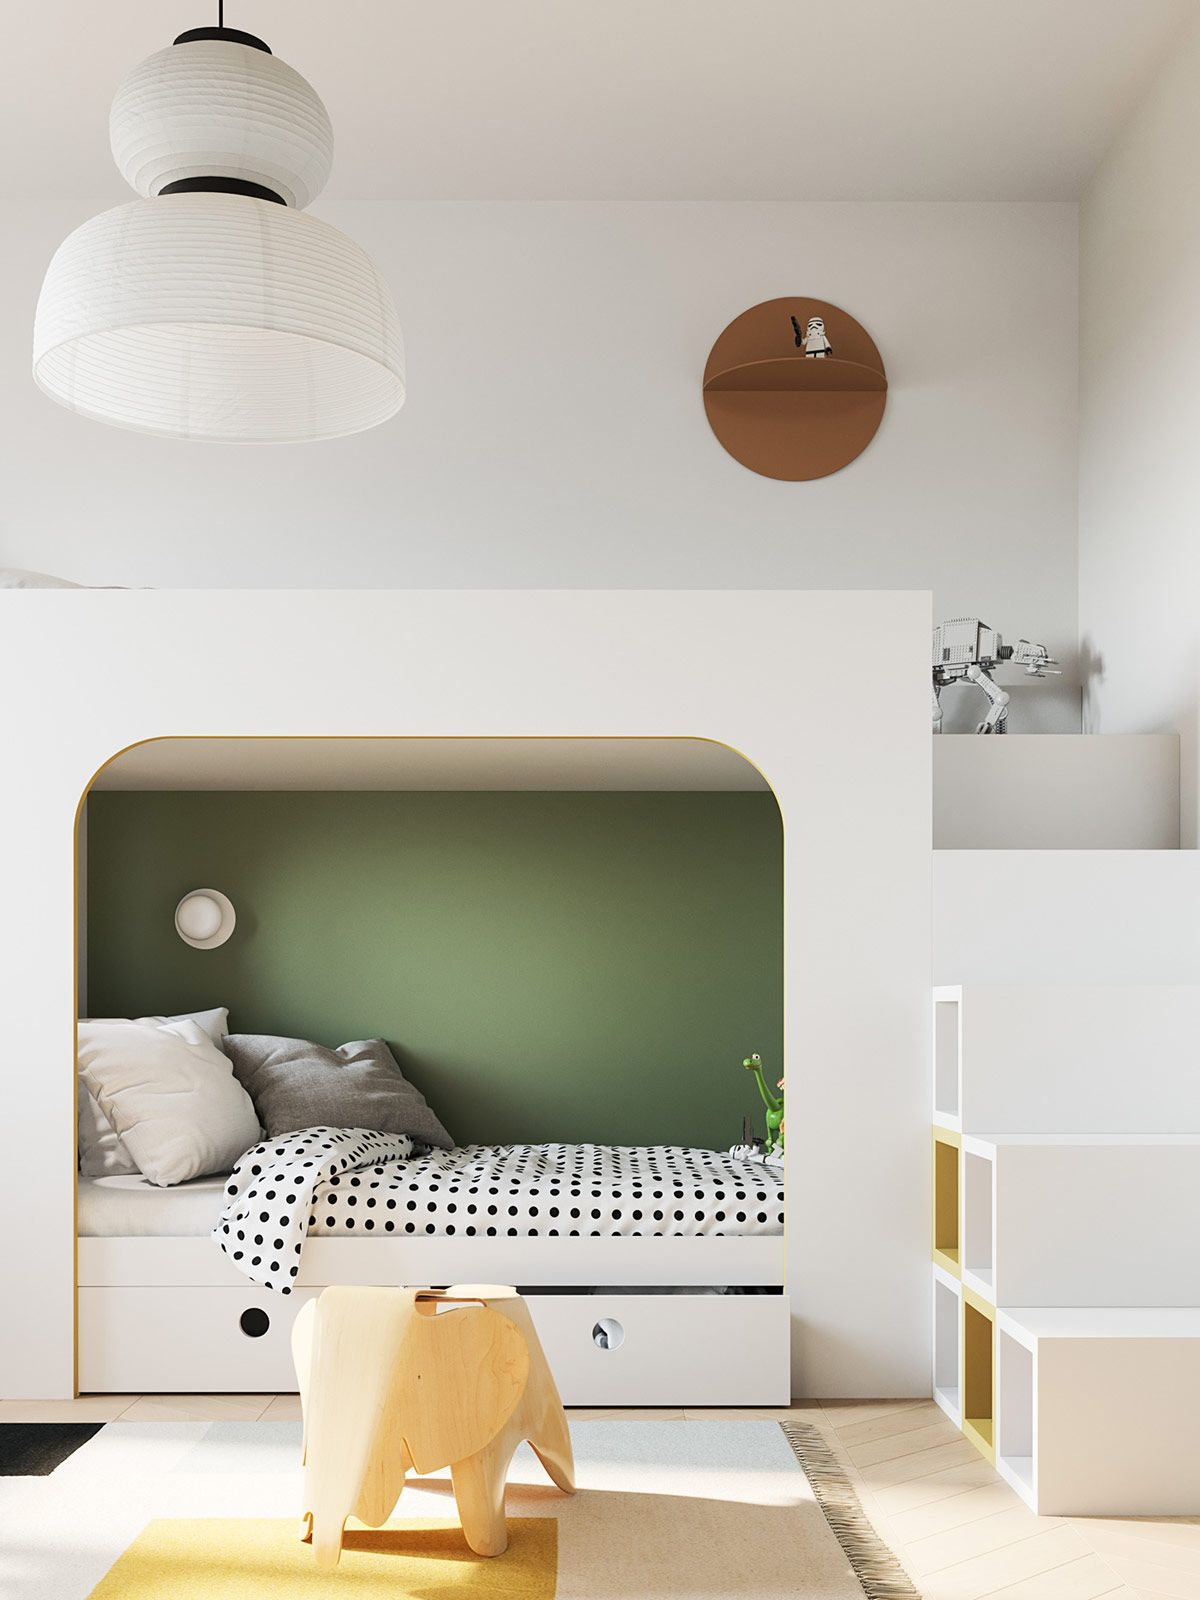 Cozy Minimalist Interior With A Muted Earthy Colour Palette Kids Bed Design Kid Room Decor Stylish Kids Room Popular minimalist children's bedroom